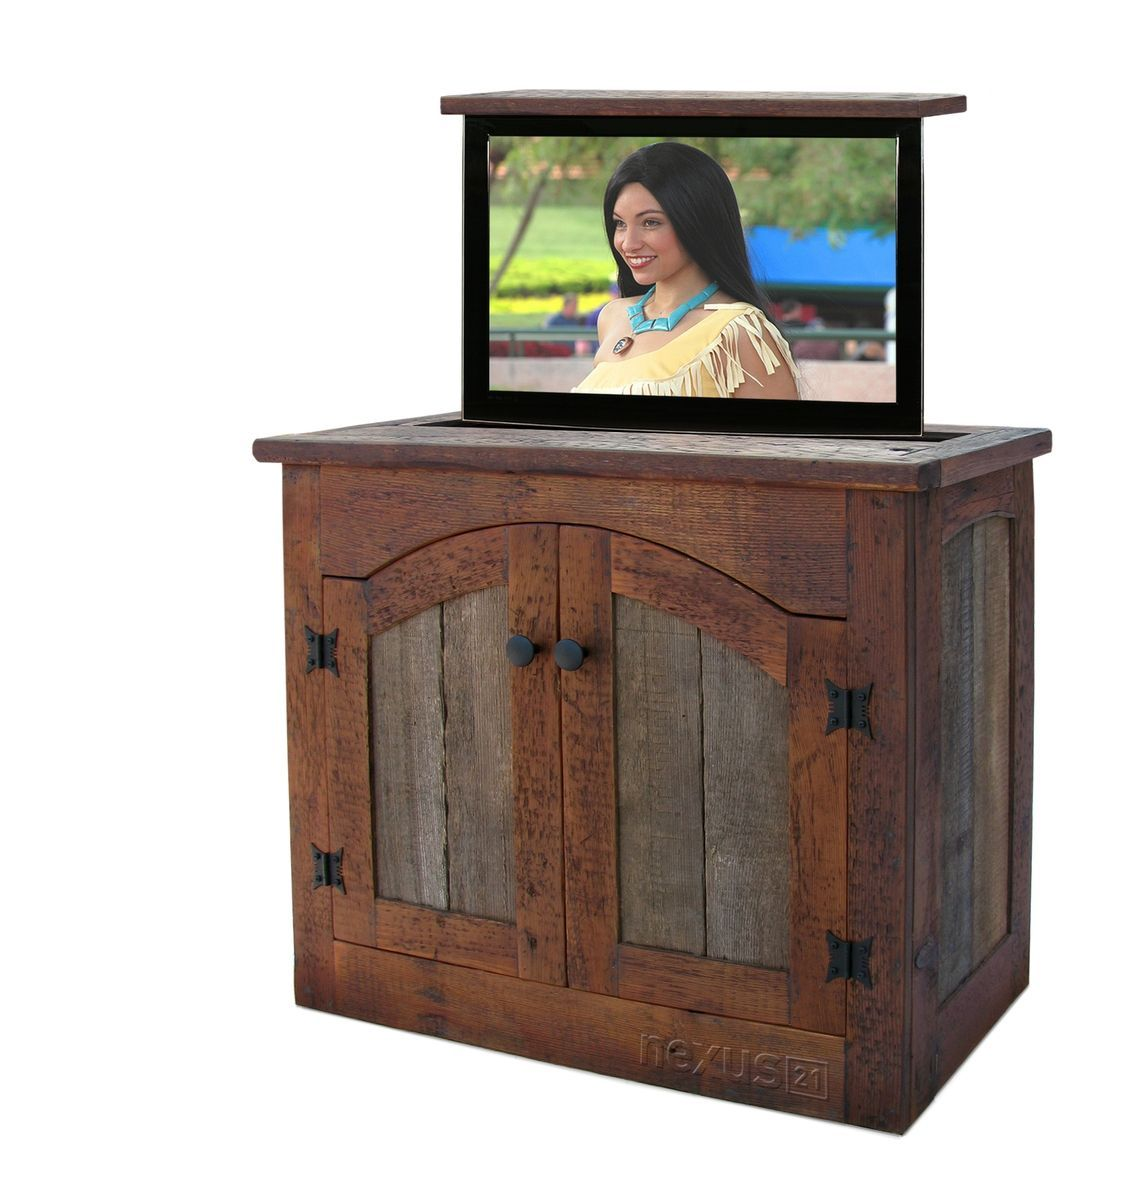 Custom Made Rustic Tv Lift Cabinet Small Projects To Try  # Meuble Tv Lift